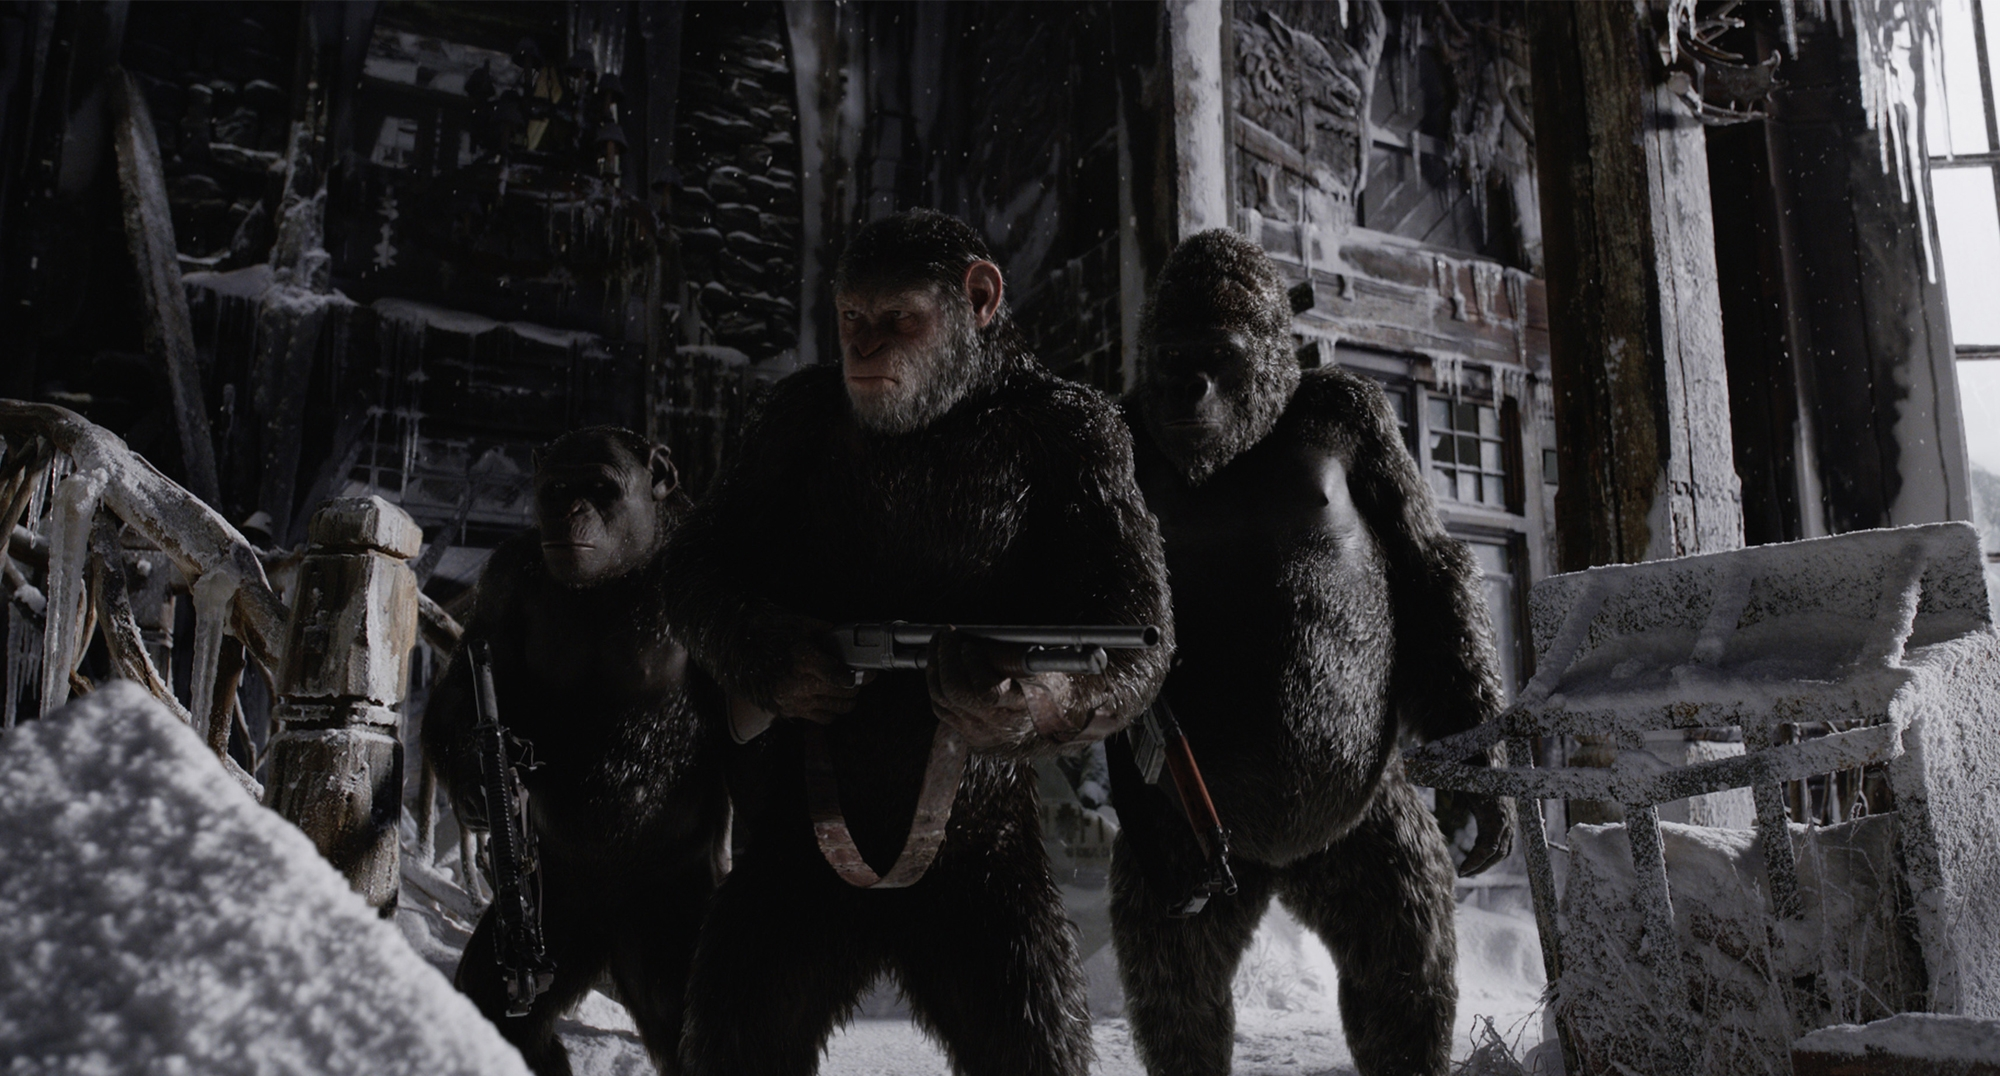 'War for the Planet of the Apes' at Palau Balaña Multicines, Barcelona